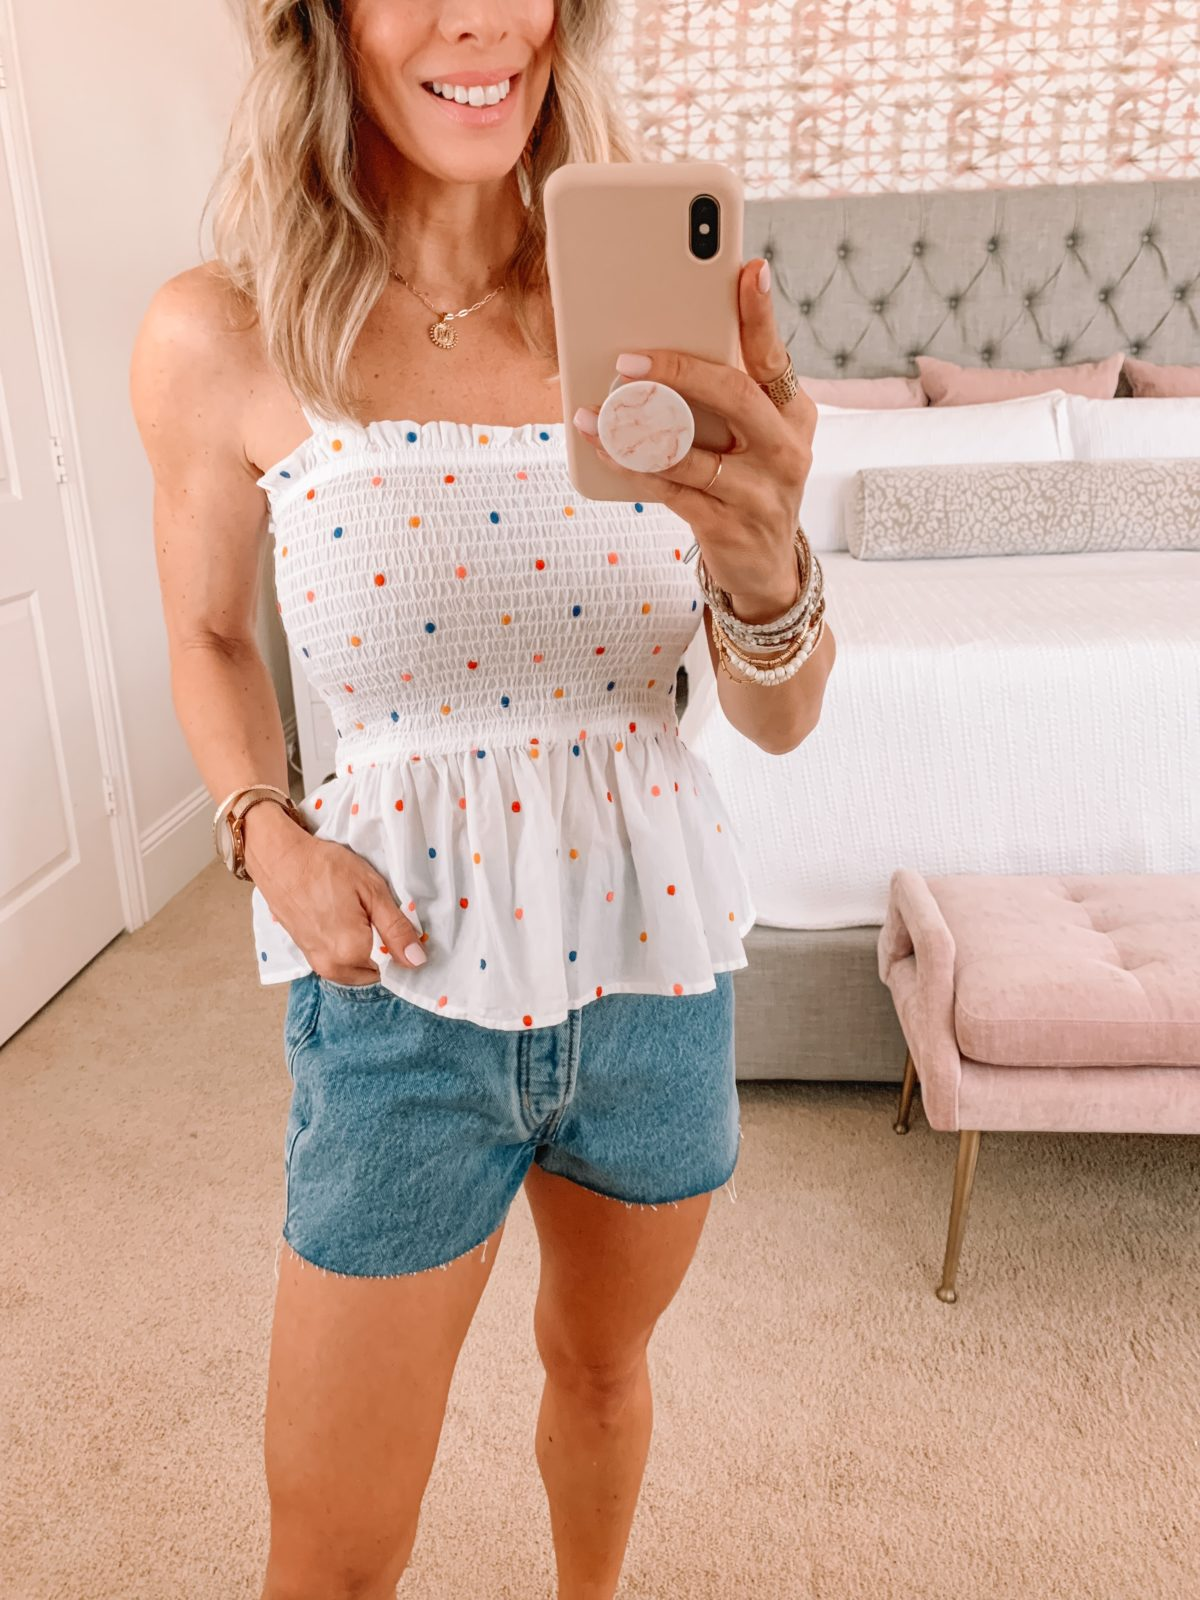 Dressing Room Finds, LOFT, Polka Dot Peplum top and shorts with sandals